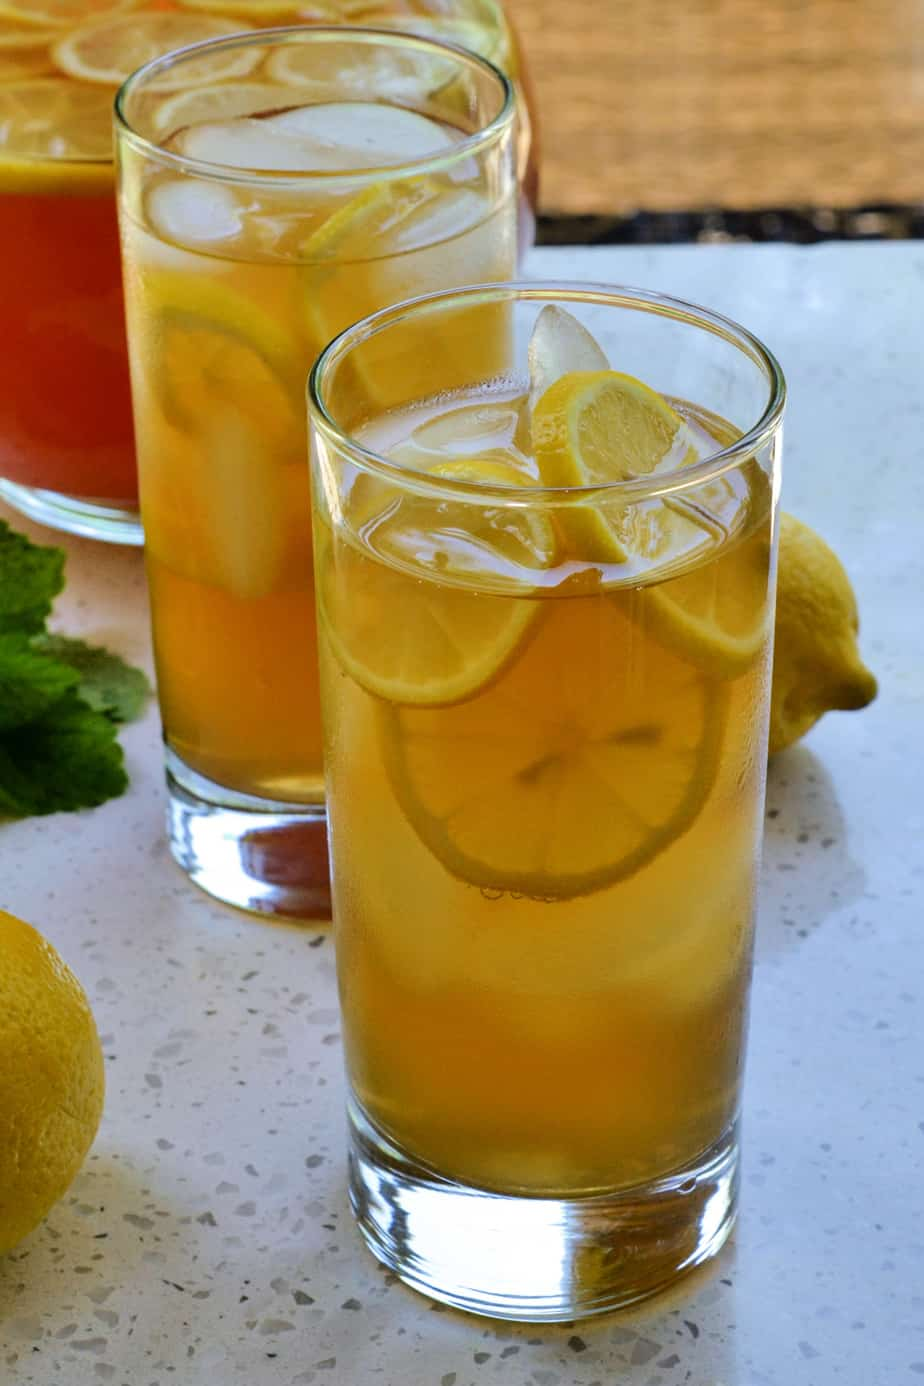 Two ice cold glasses of Arnold Palmer Tea with fresh lemon slices.